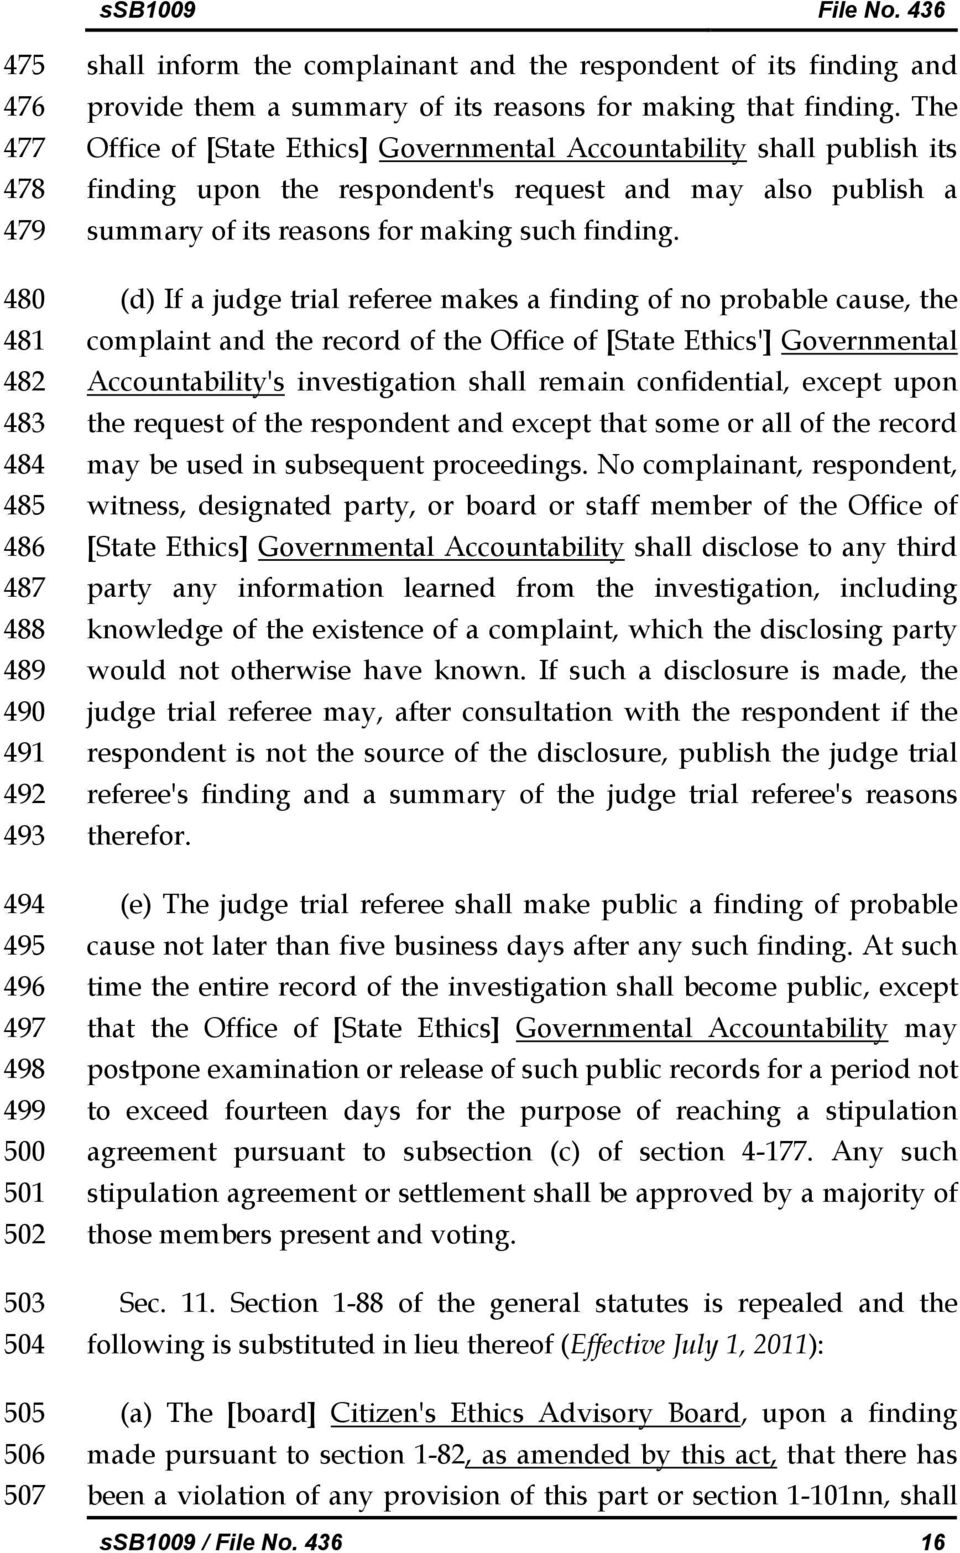 The Office of [State Ethics] Governmental Accountability shall publish its finding upon the respondent's request and may also publish a summary of its reasons for making such finding.